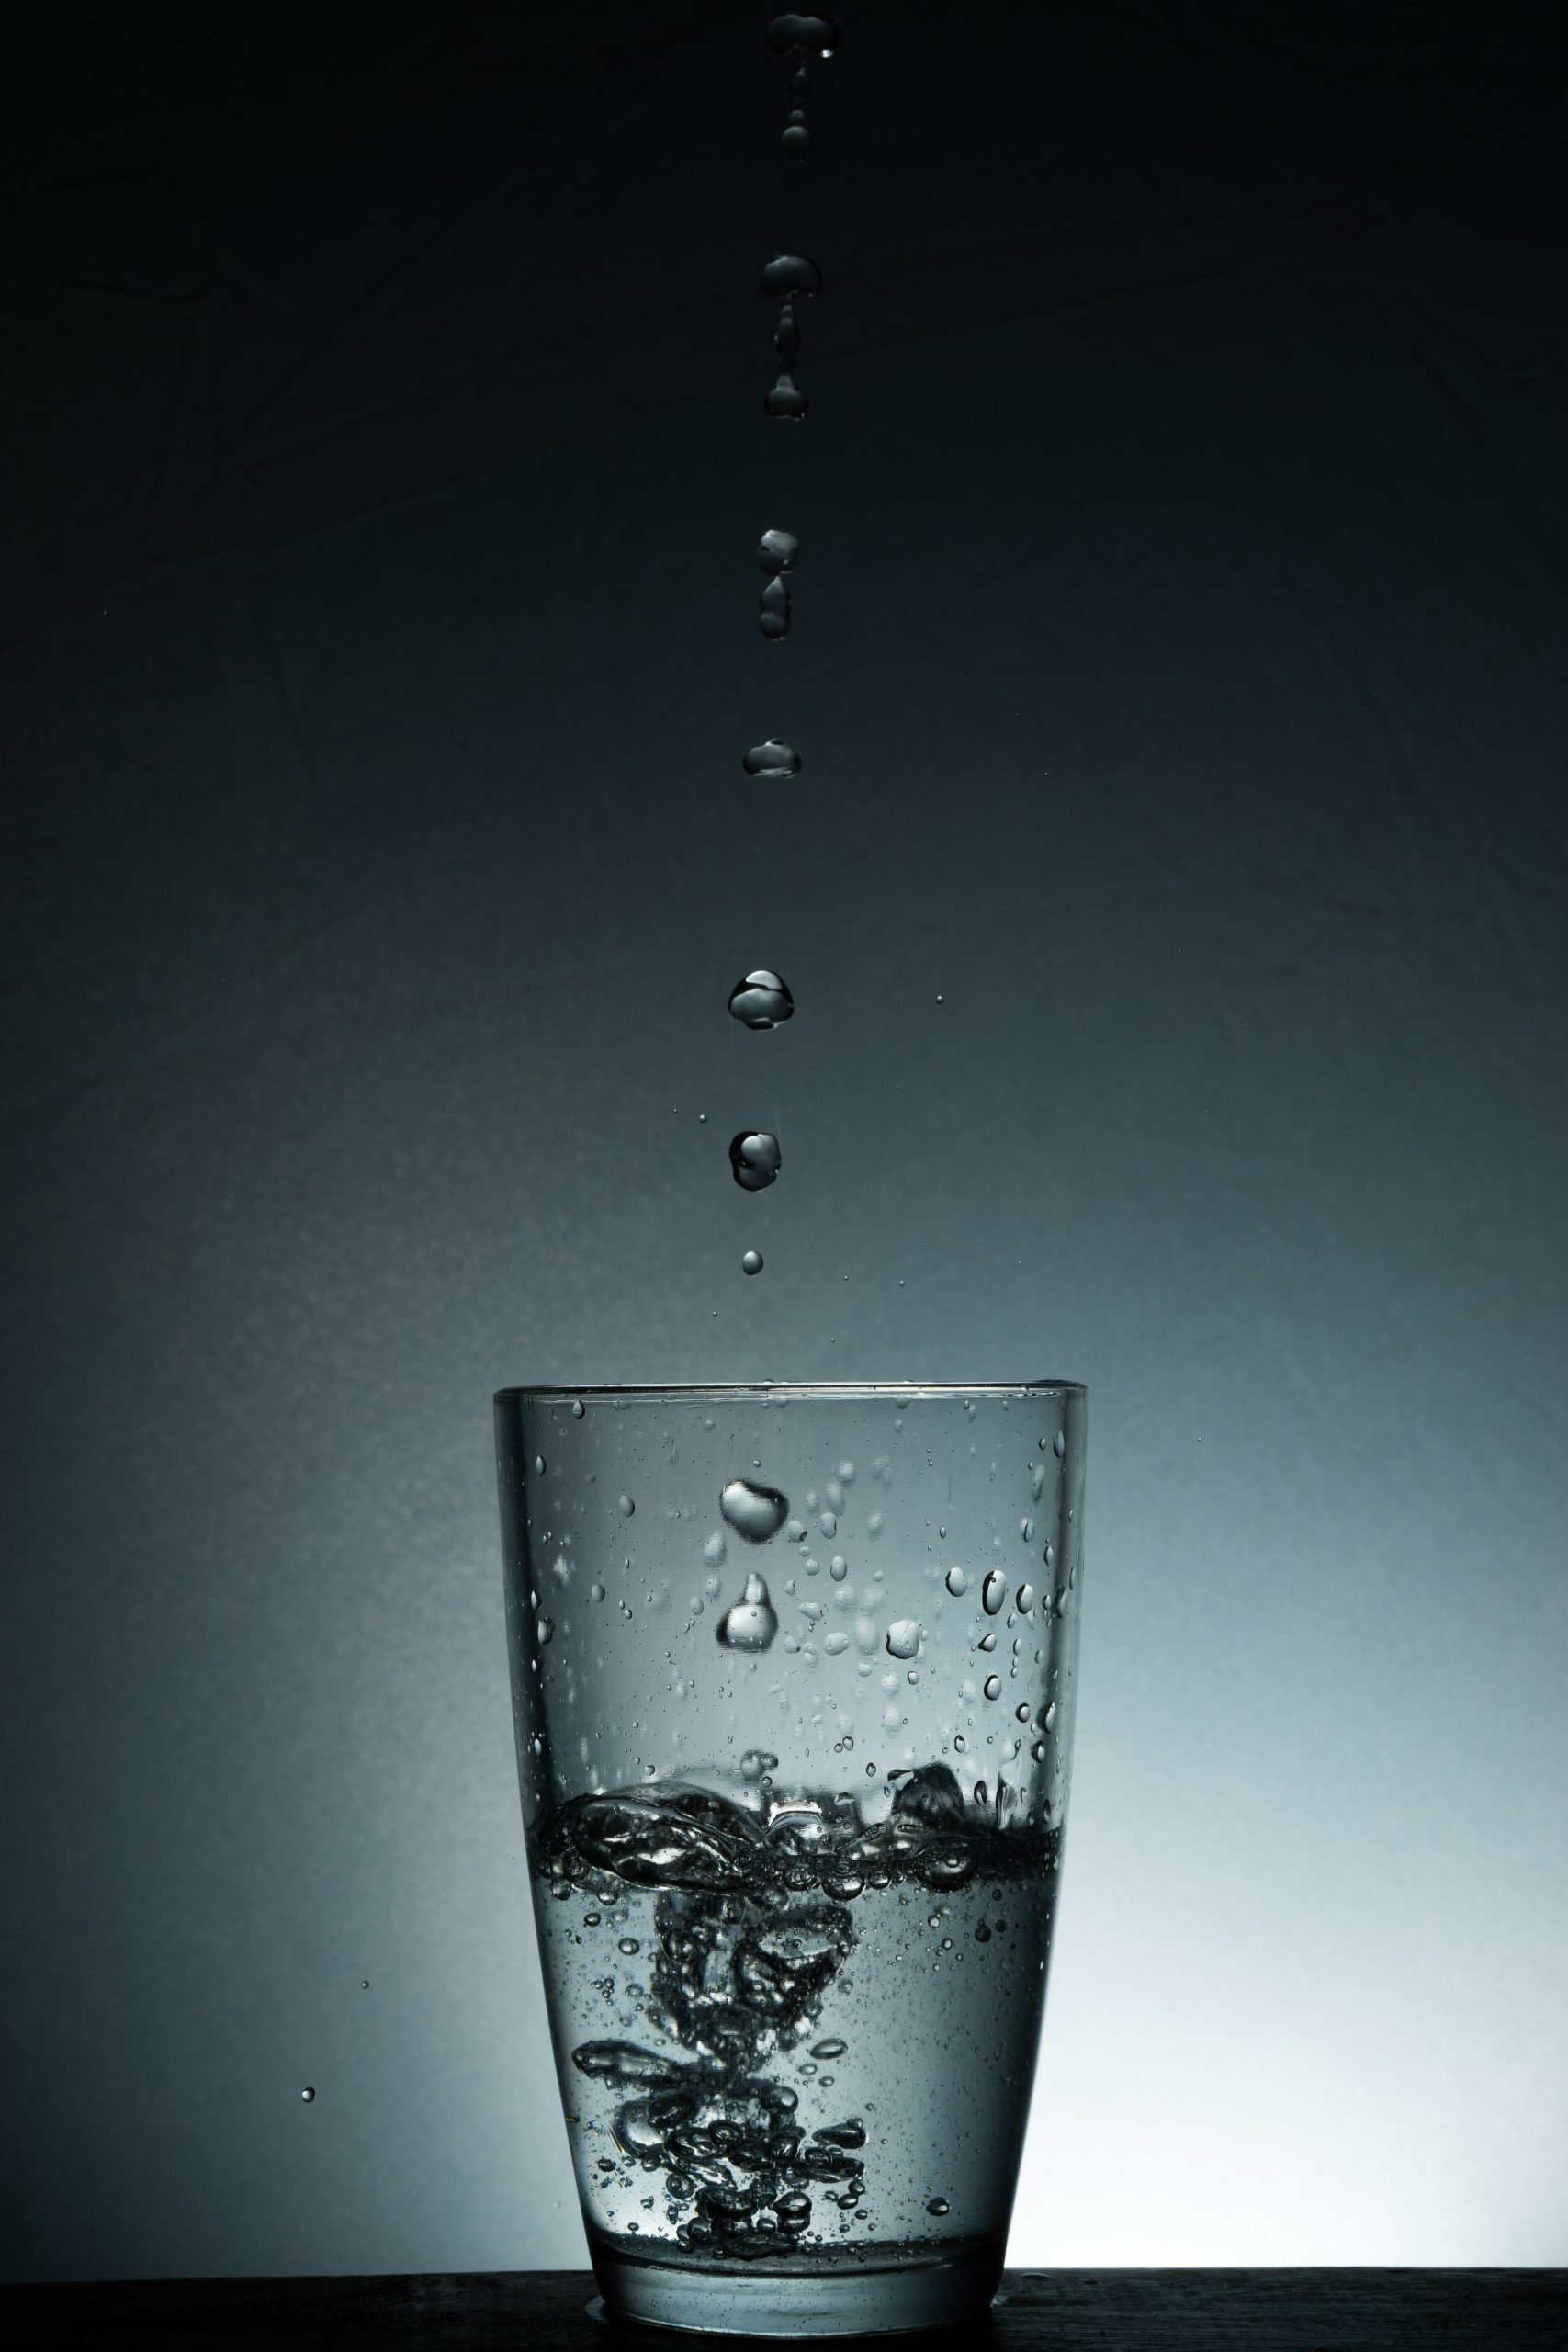 Waterdrops and glass